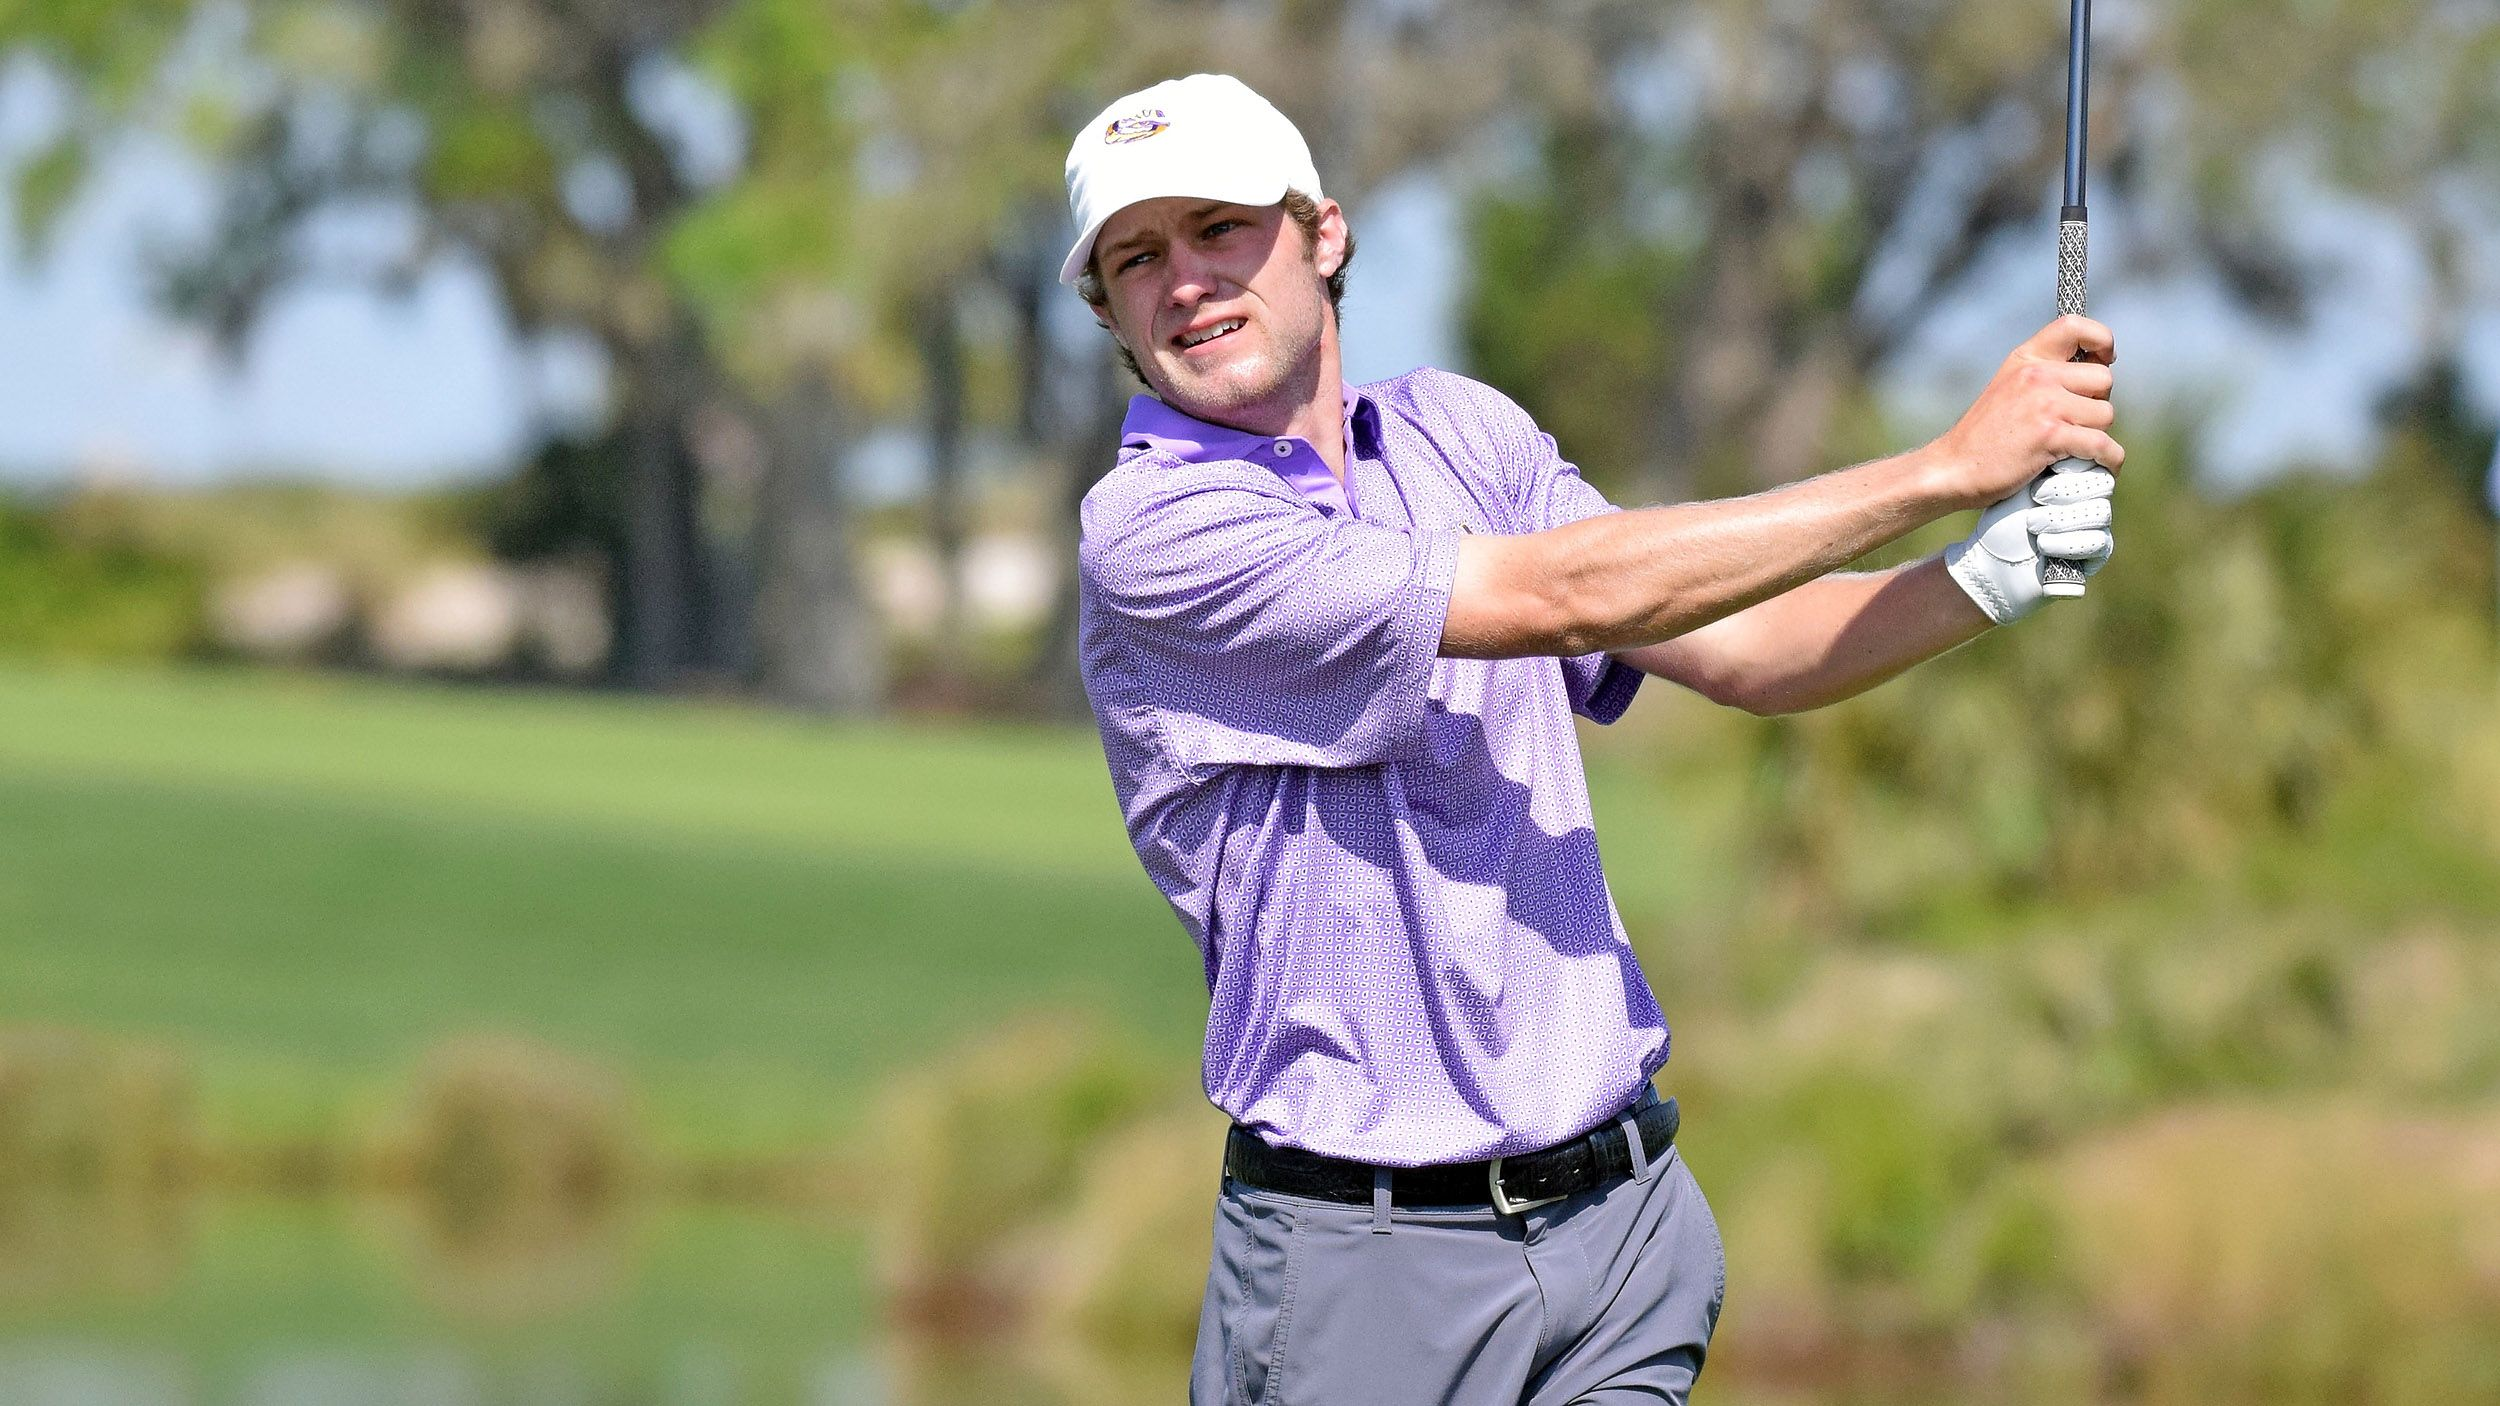 LSU takes tournament lead in Round 2